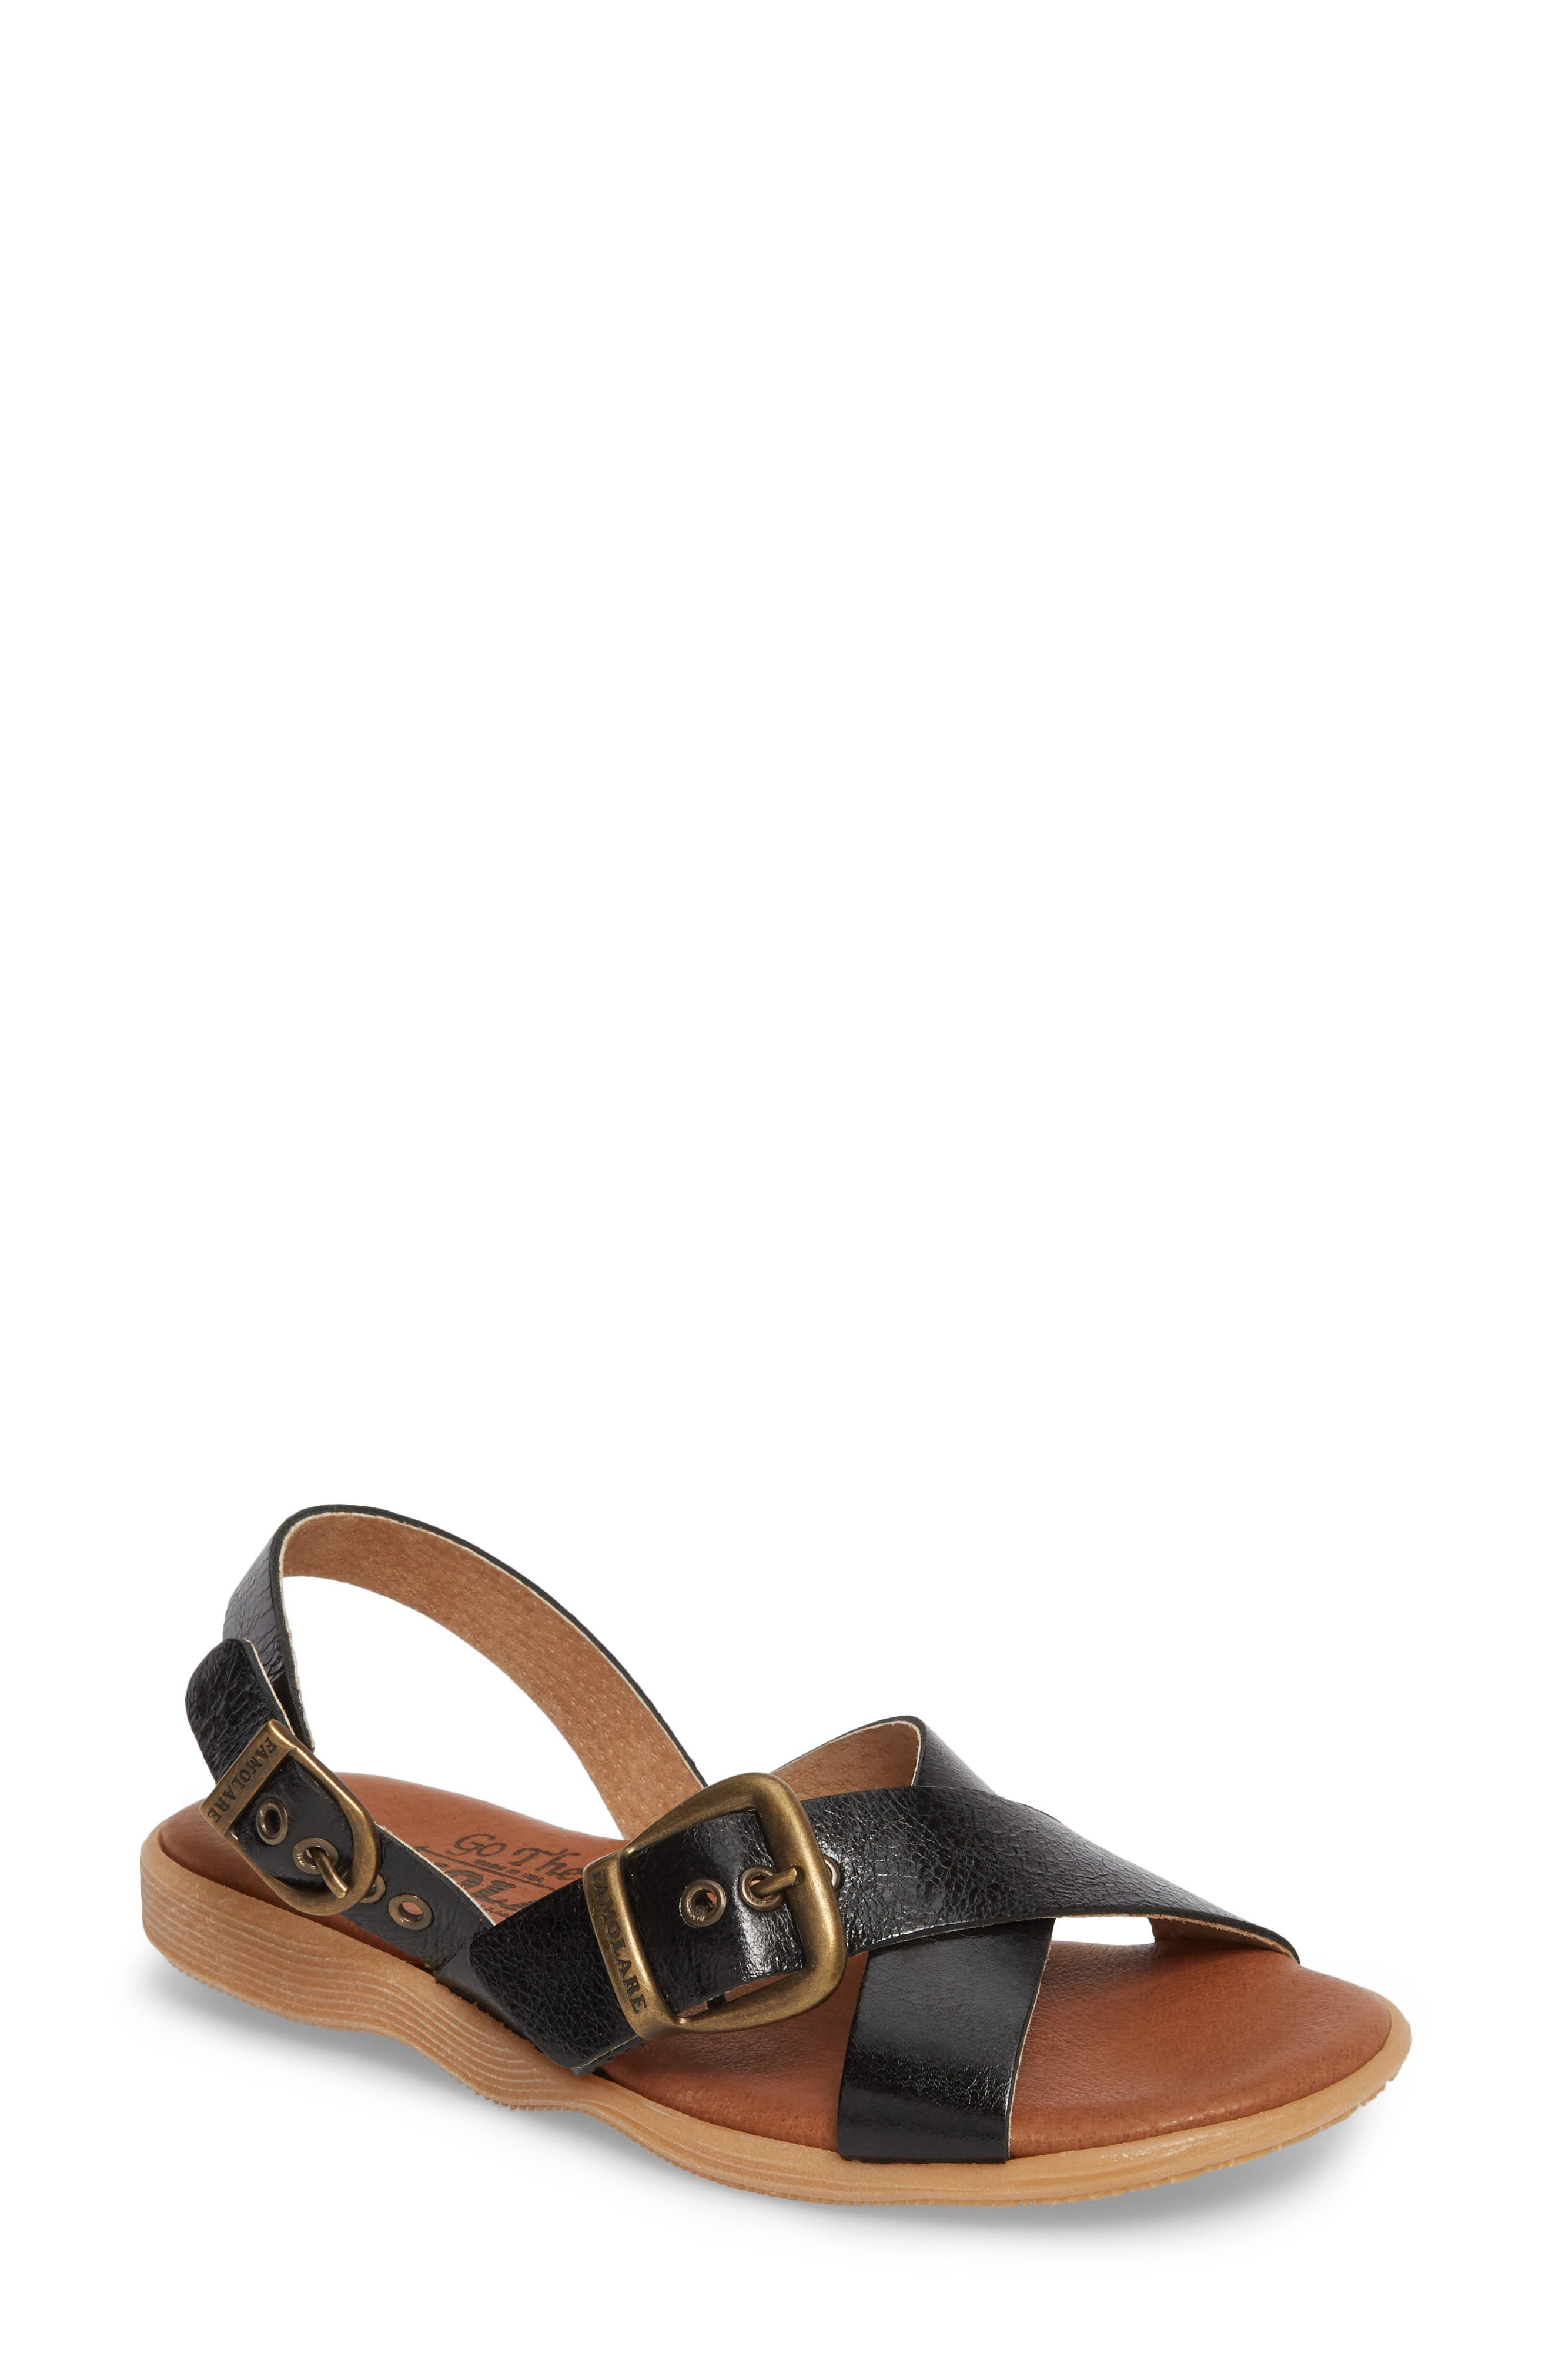 Summer Daze Sandal,                         Main,                         color, Coal